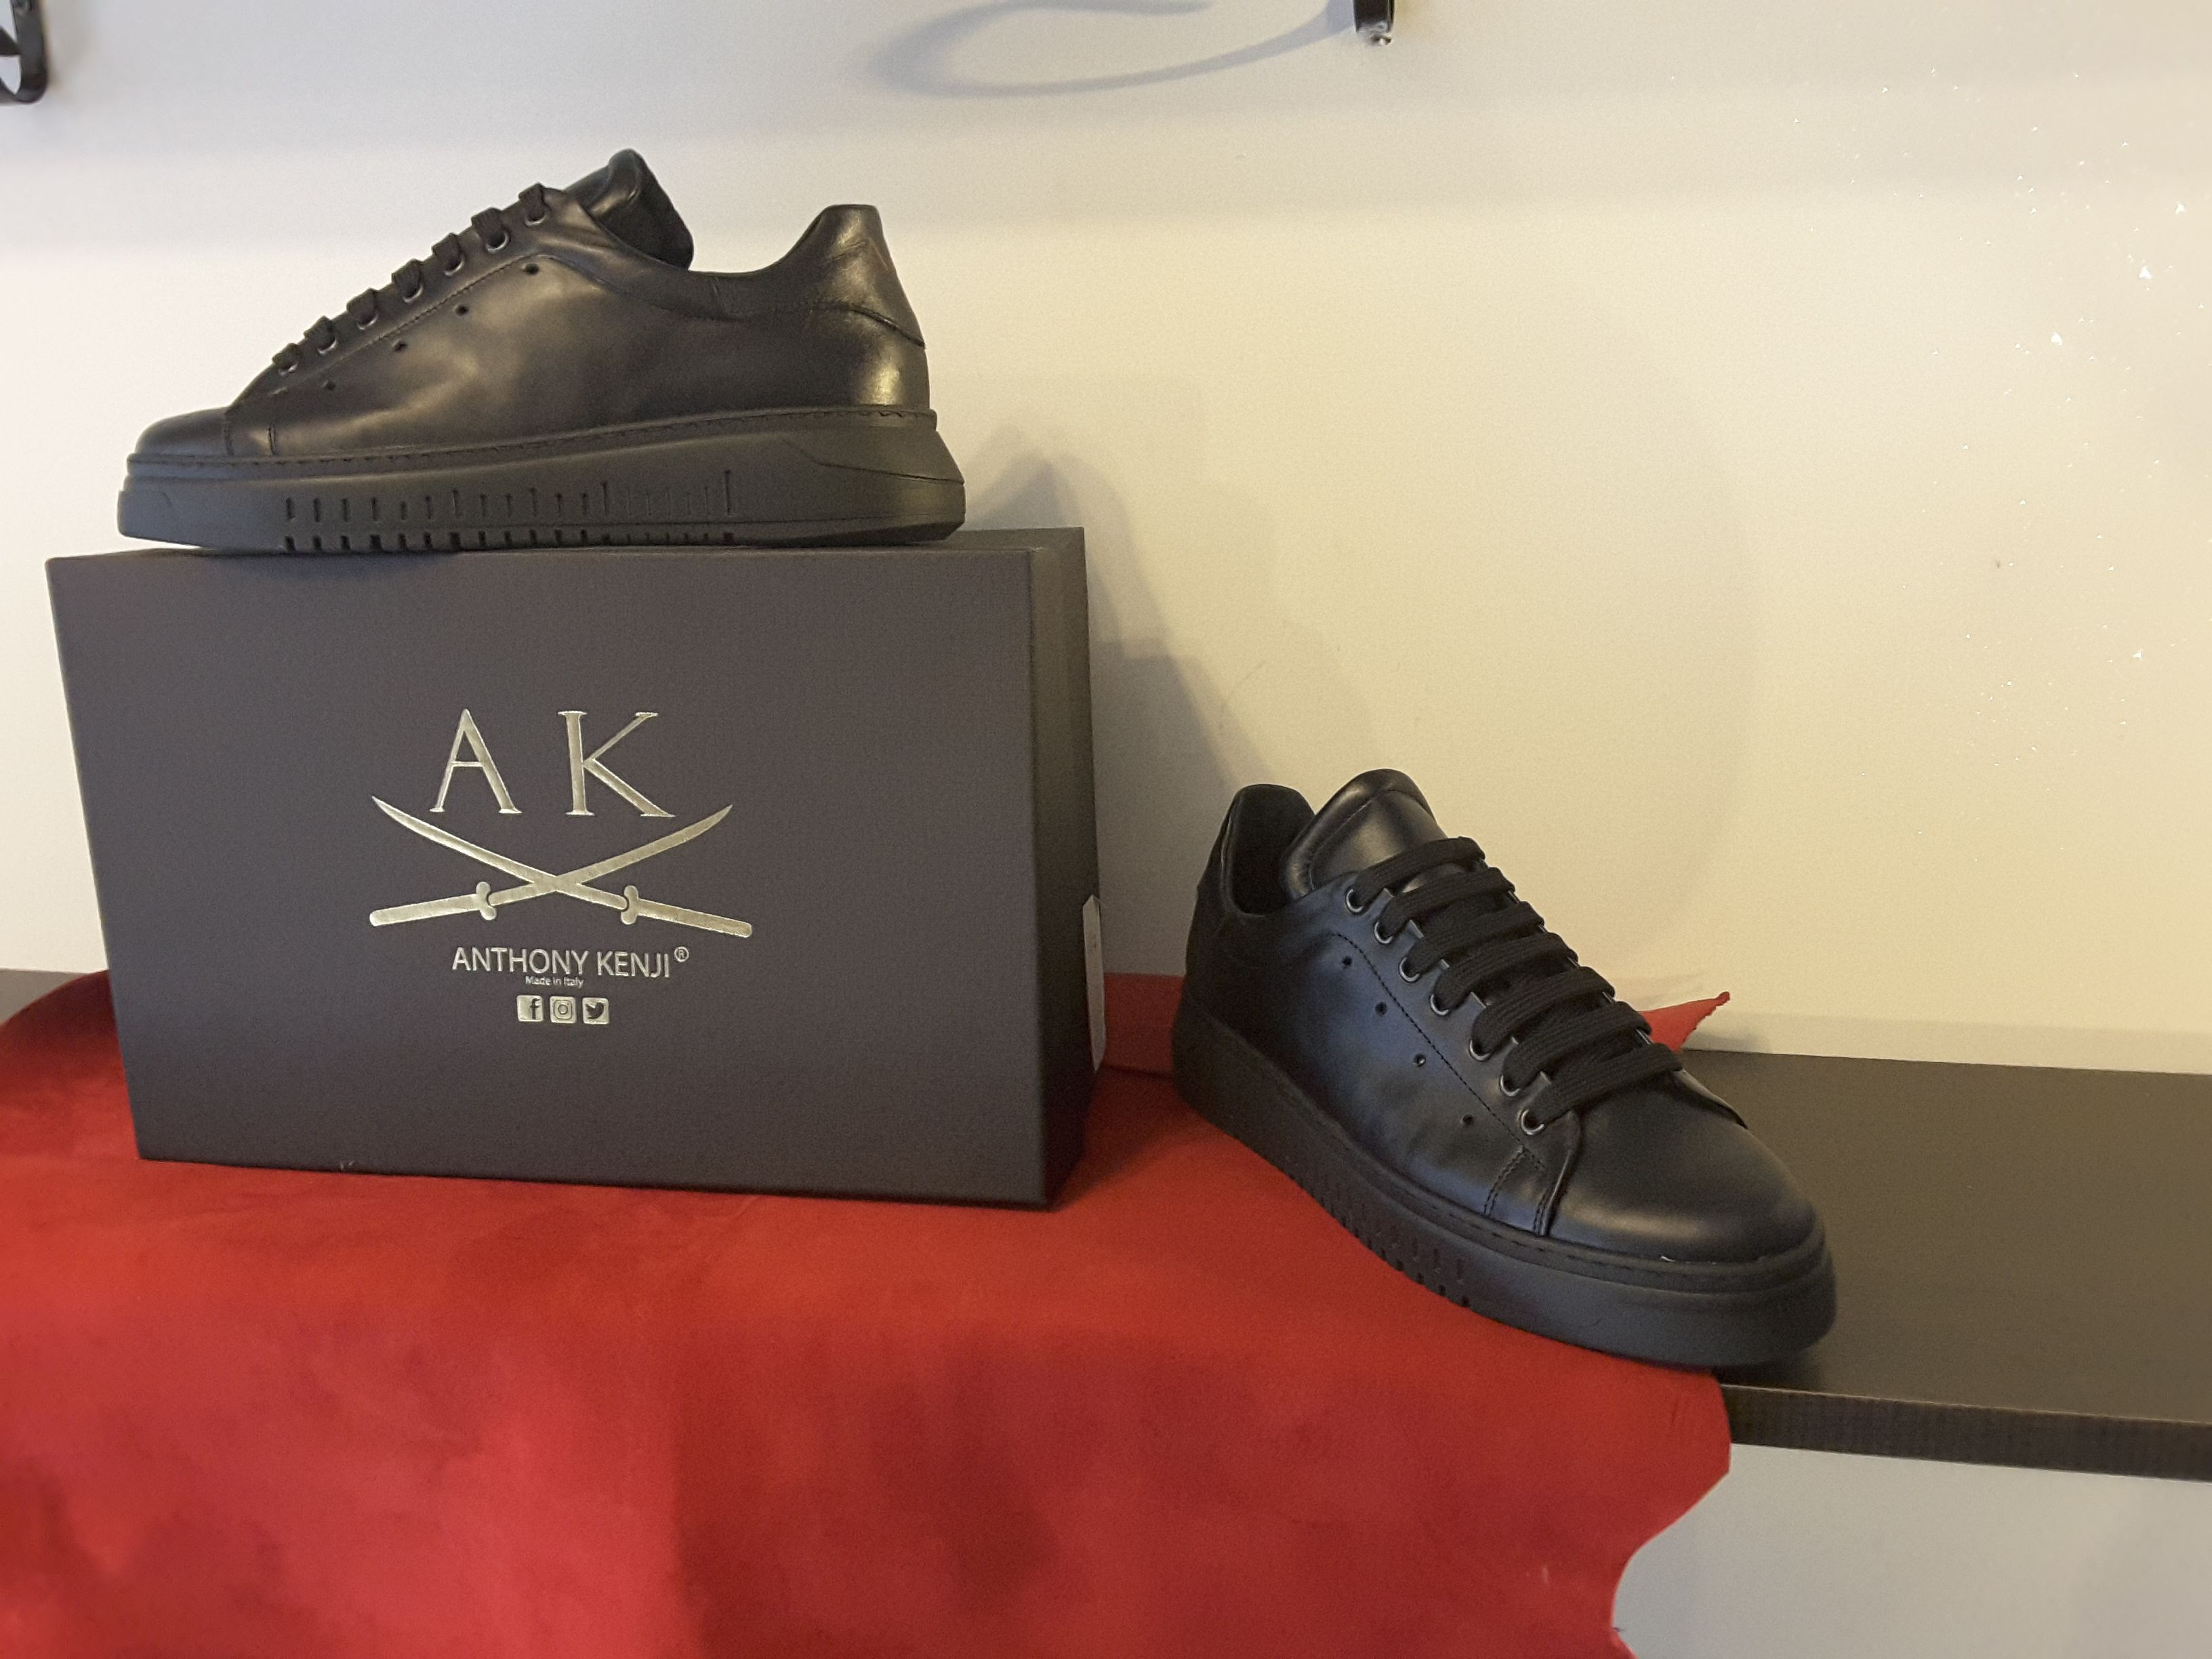 Sneakers uomo Anthony Kenji in vitello nero, foderate in